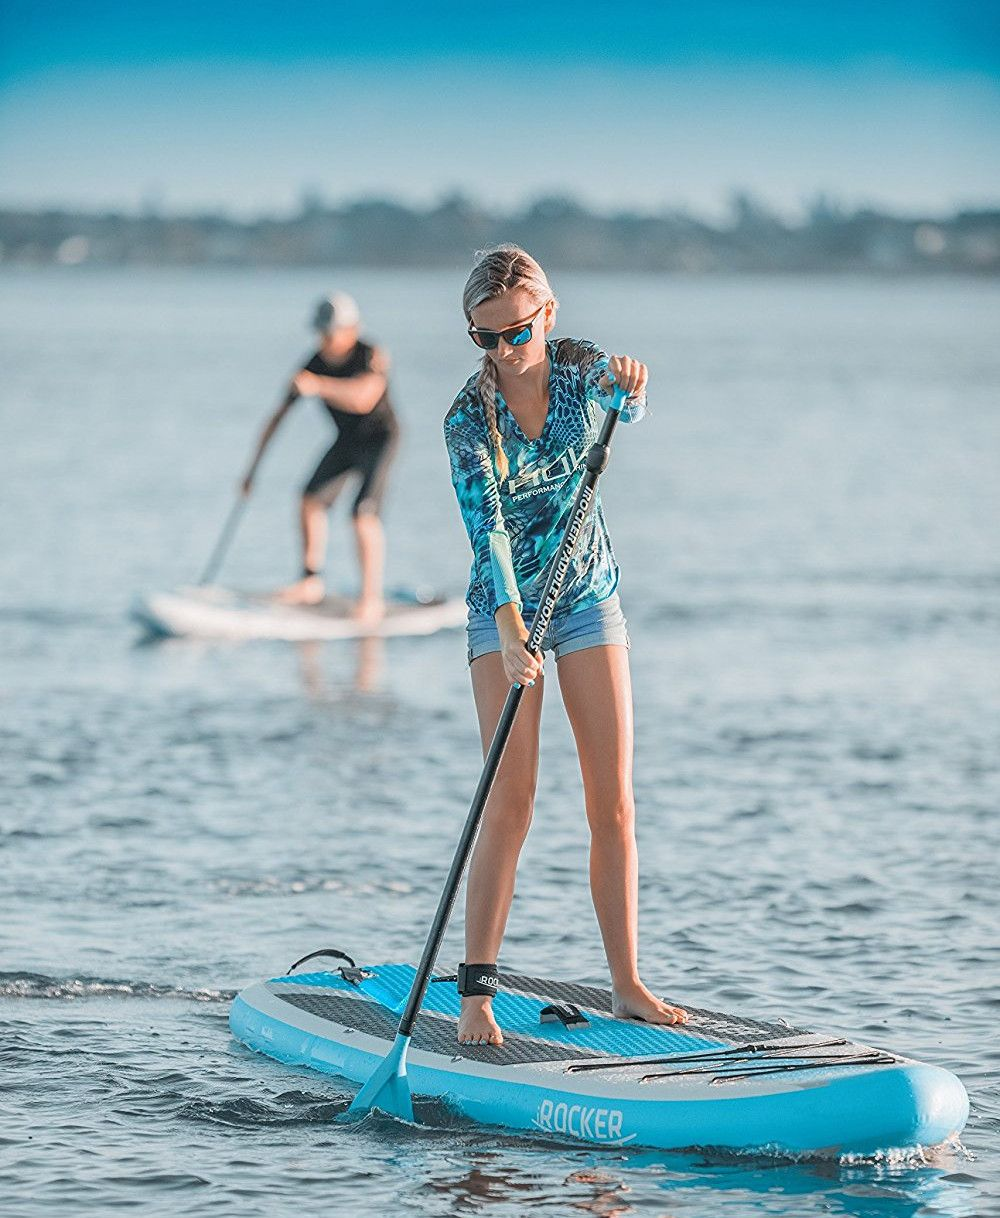 iRocker CRUISER inflatable paddle board review